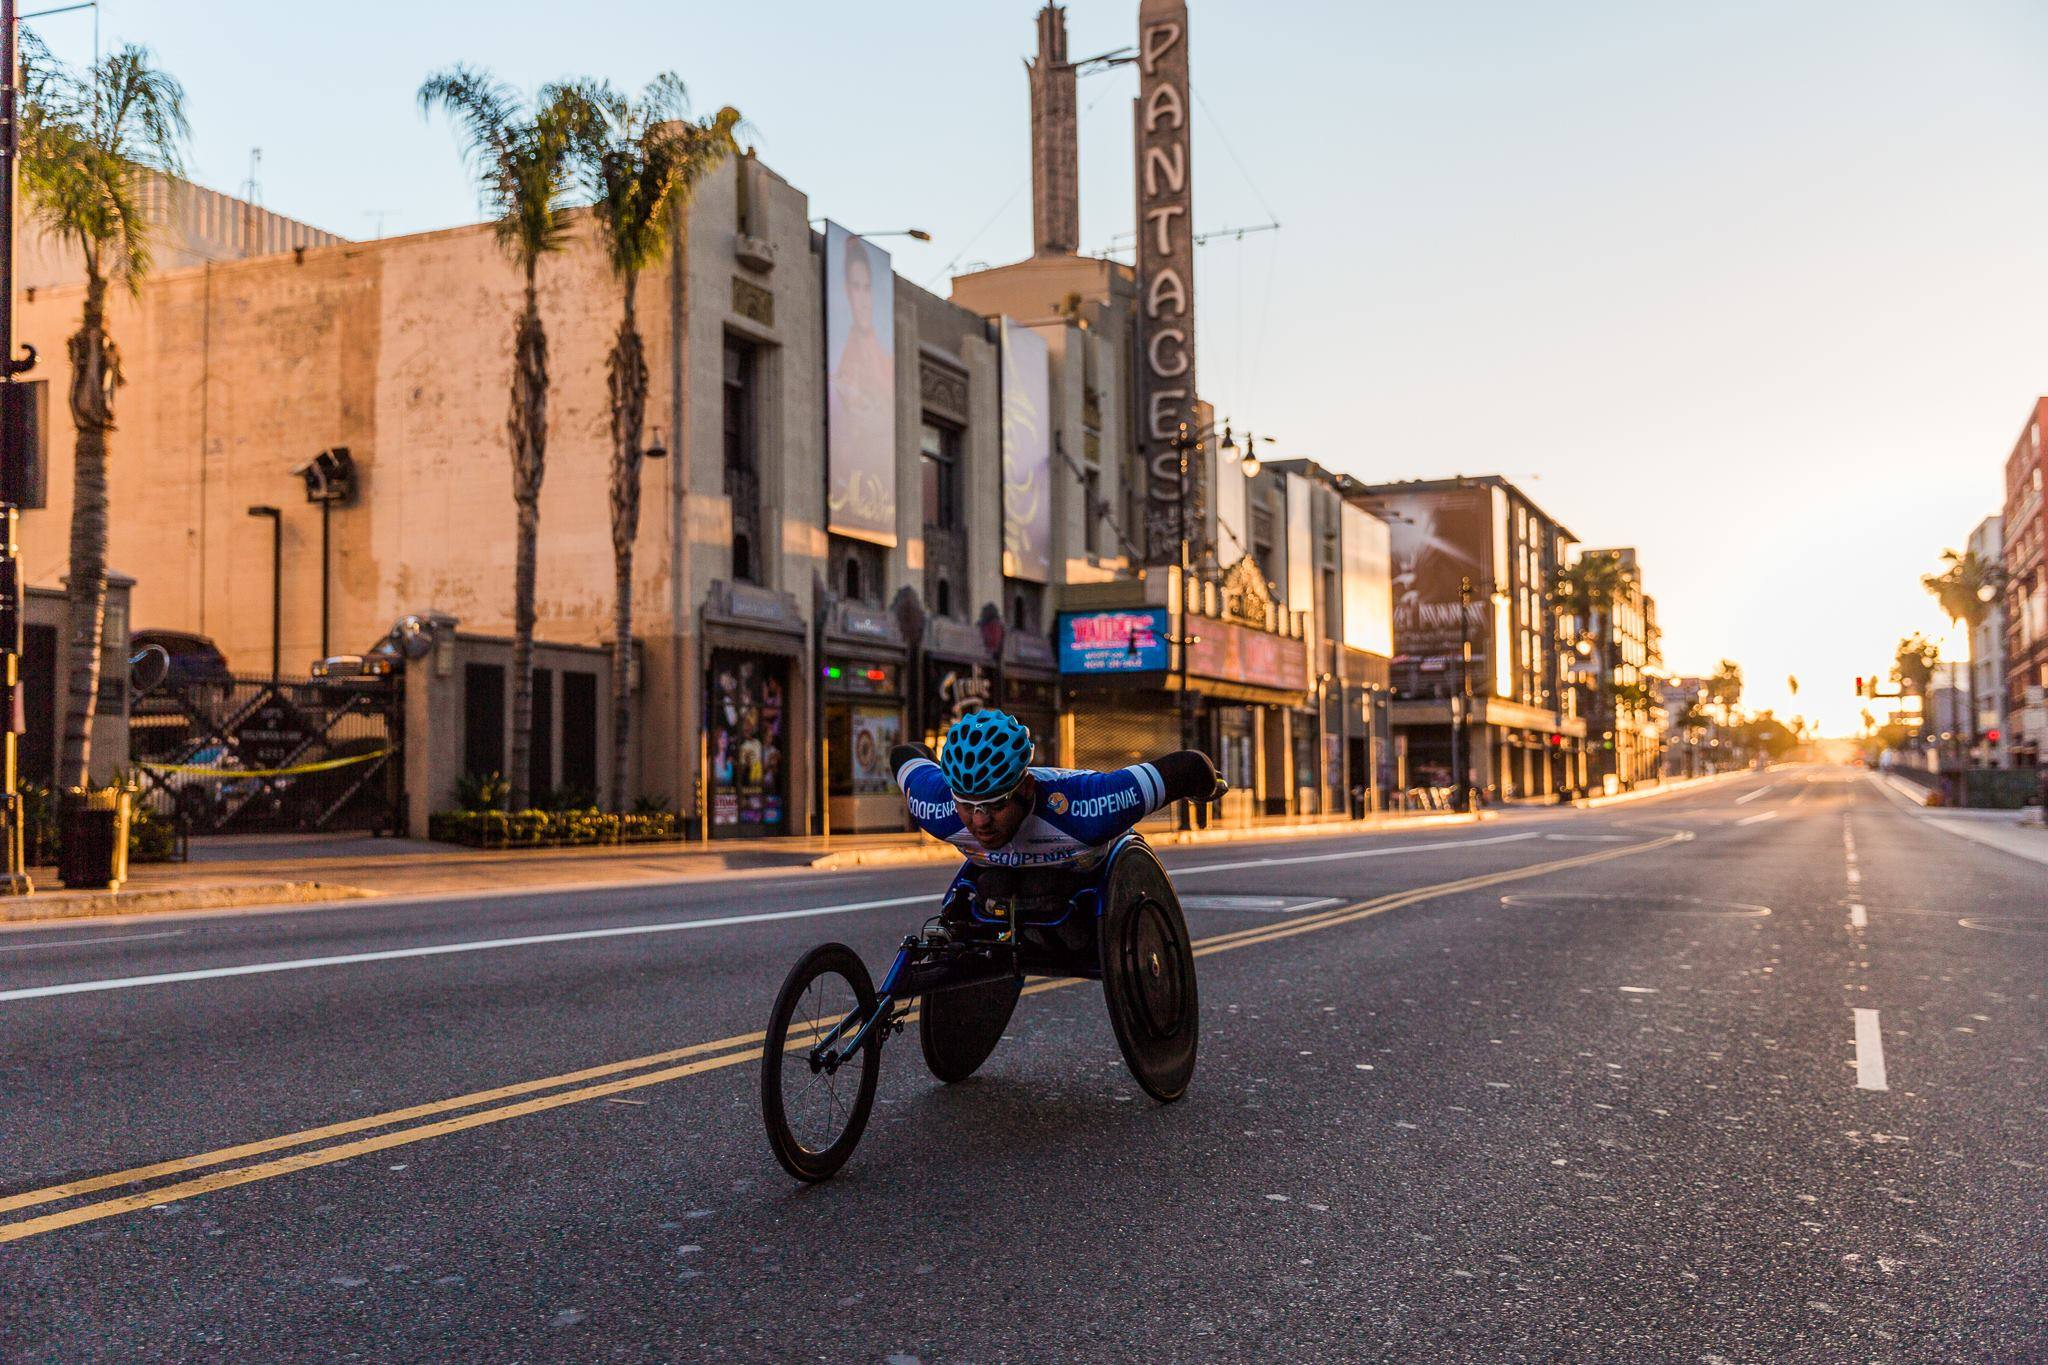 LA Marathon wheelchair racer passes the Pantages Theatre